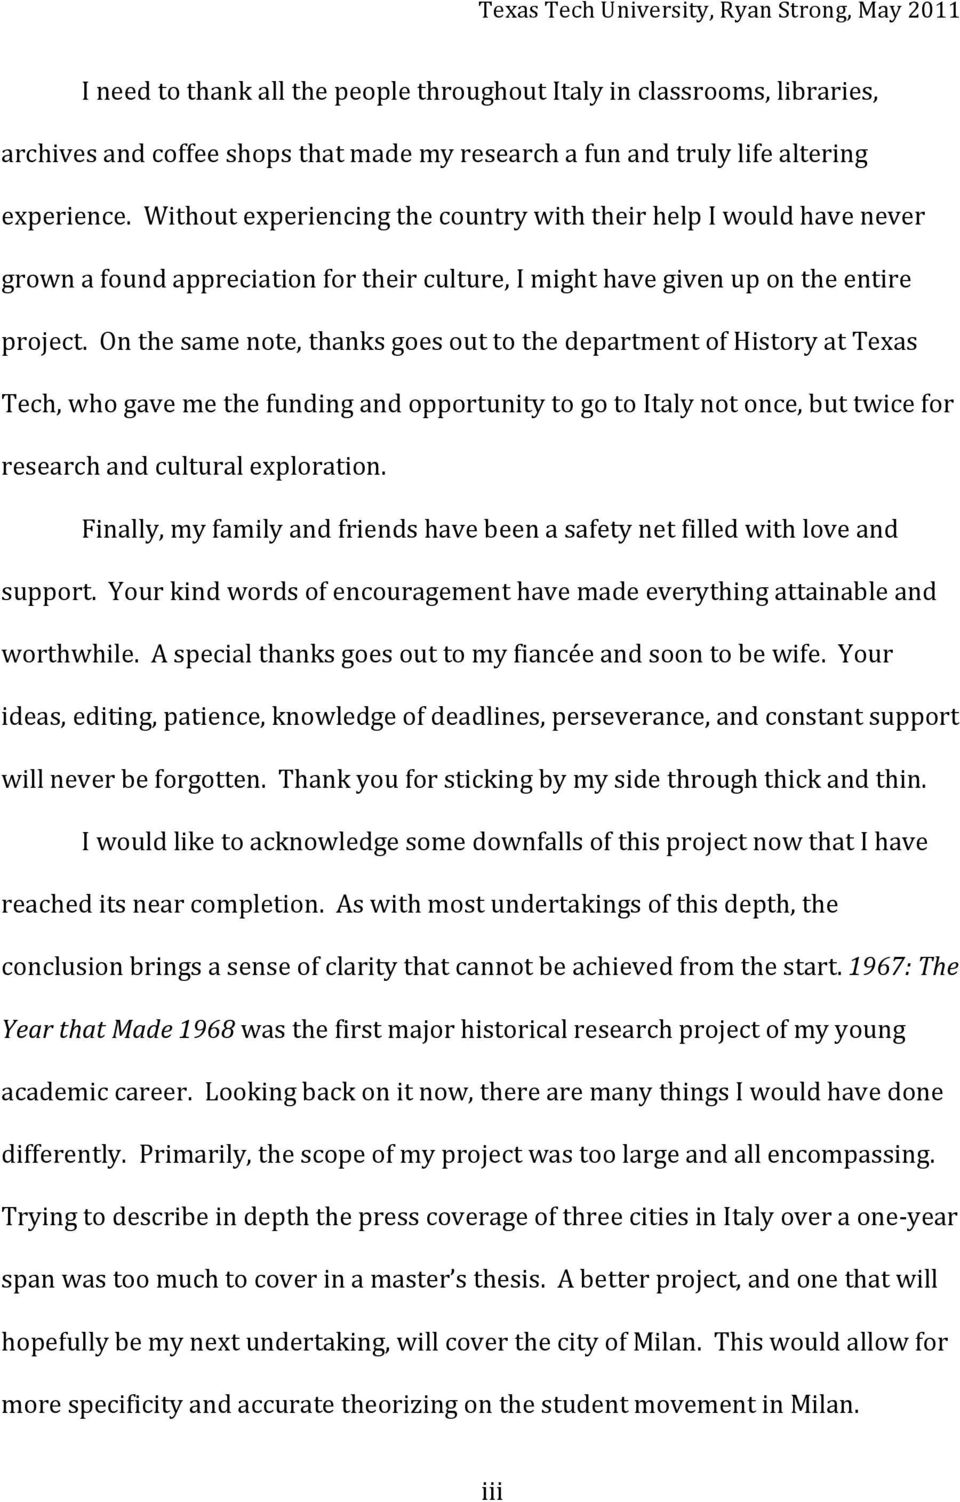 onthesamenote,thanksgoesouttothedepartmentofhistoryattexas Tech,whogavemethefundingandopportunitytogotoItalynotonce,buttwicefor researchandculturalexploration.